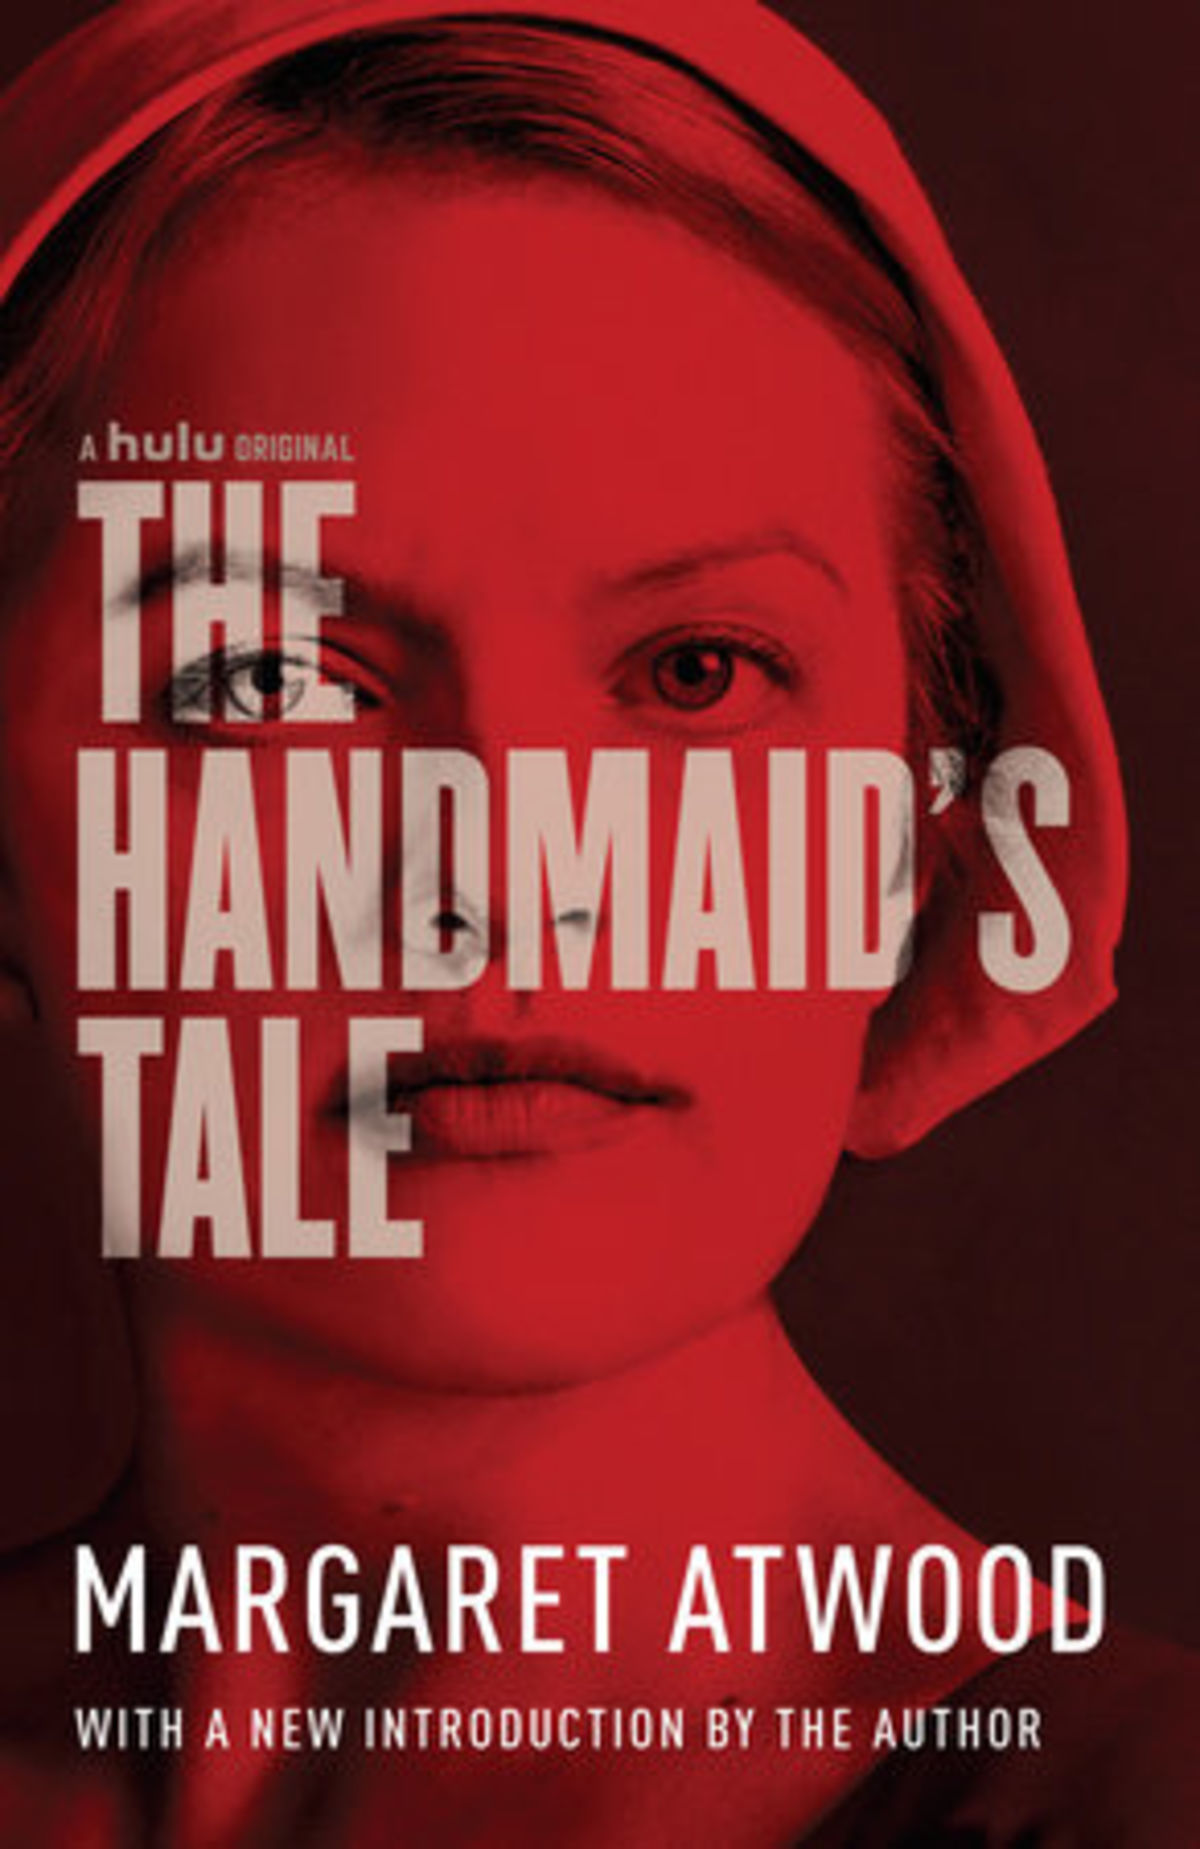 The Handmaid's Tale, Feminism, and the Dangers of Religion